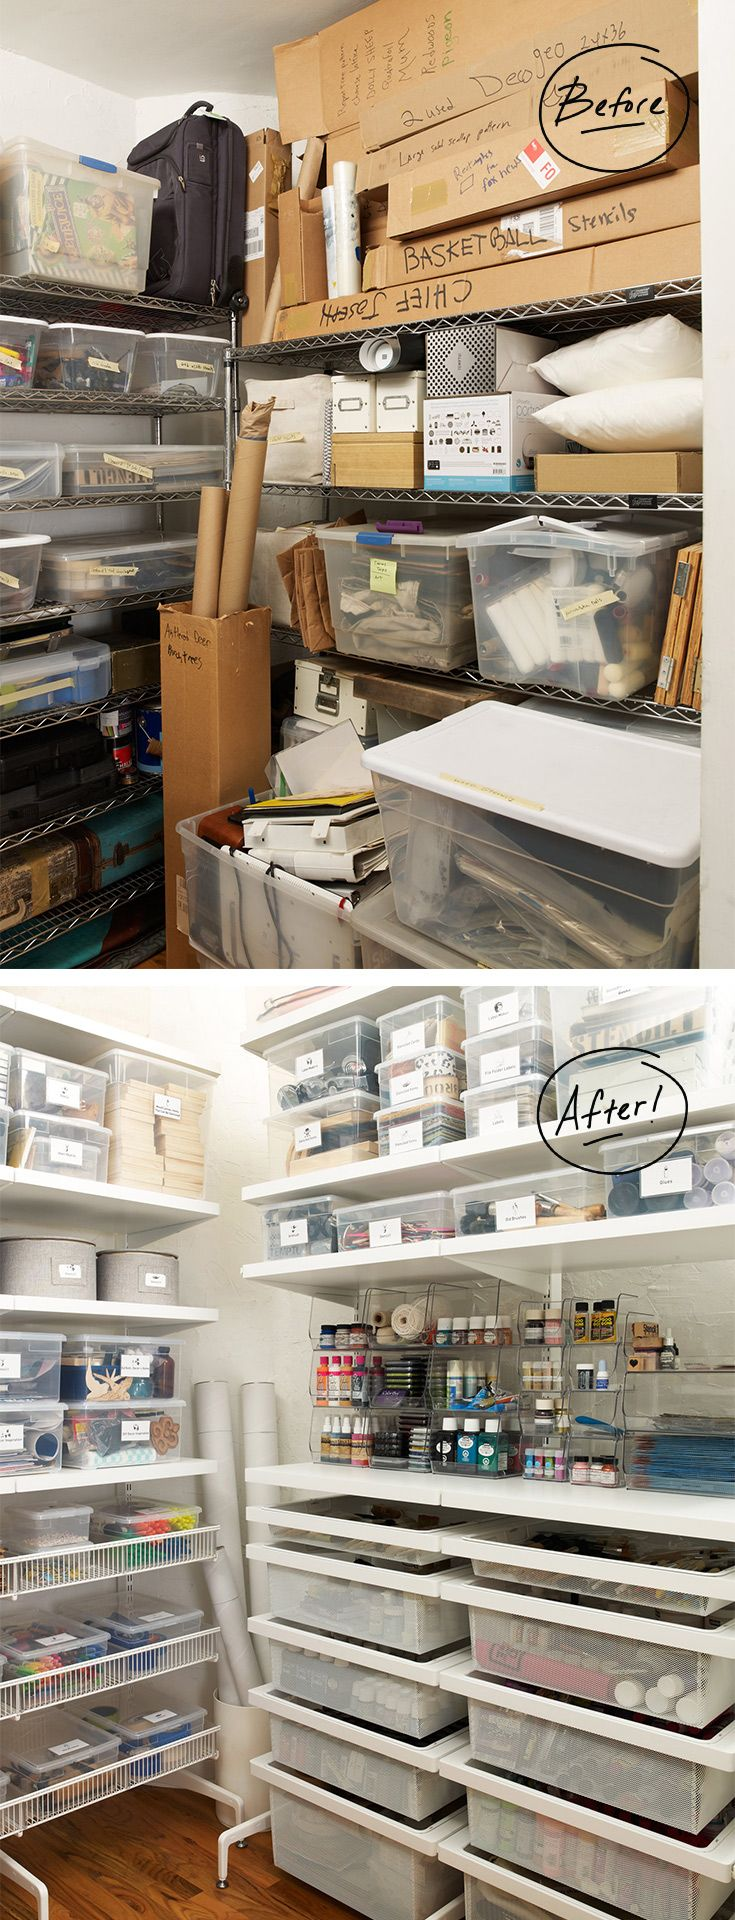 499 best office organization images on pinterest | office